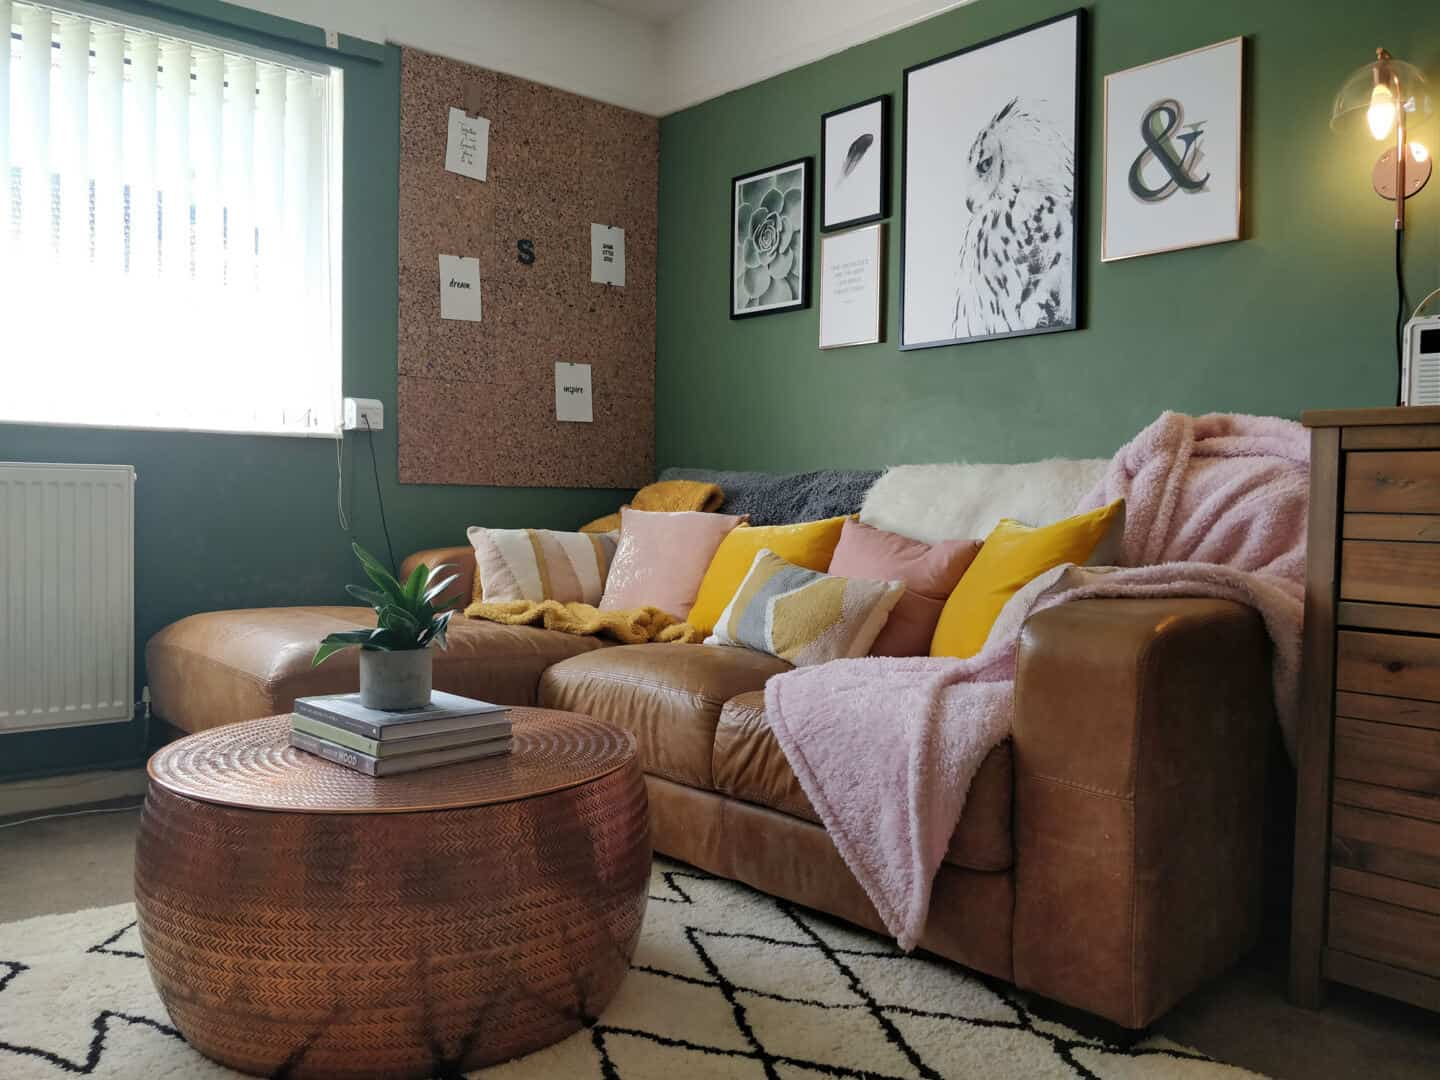 Autumn home updates with Habitat. A green living room featuring a brown leather sofa, copper coffee table and pink and yellow velvet cushions.